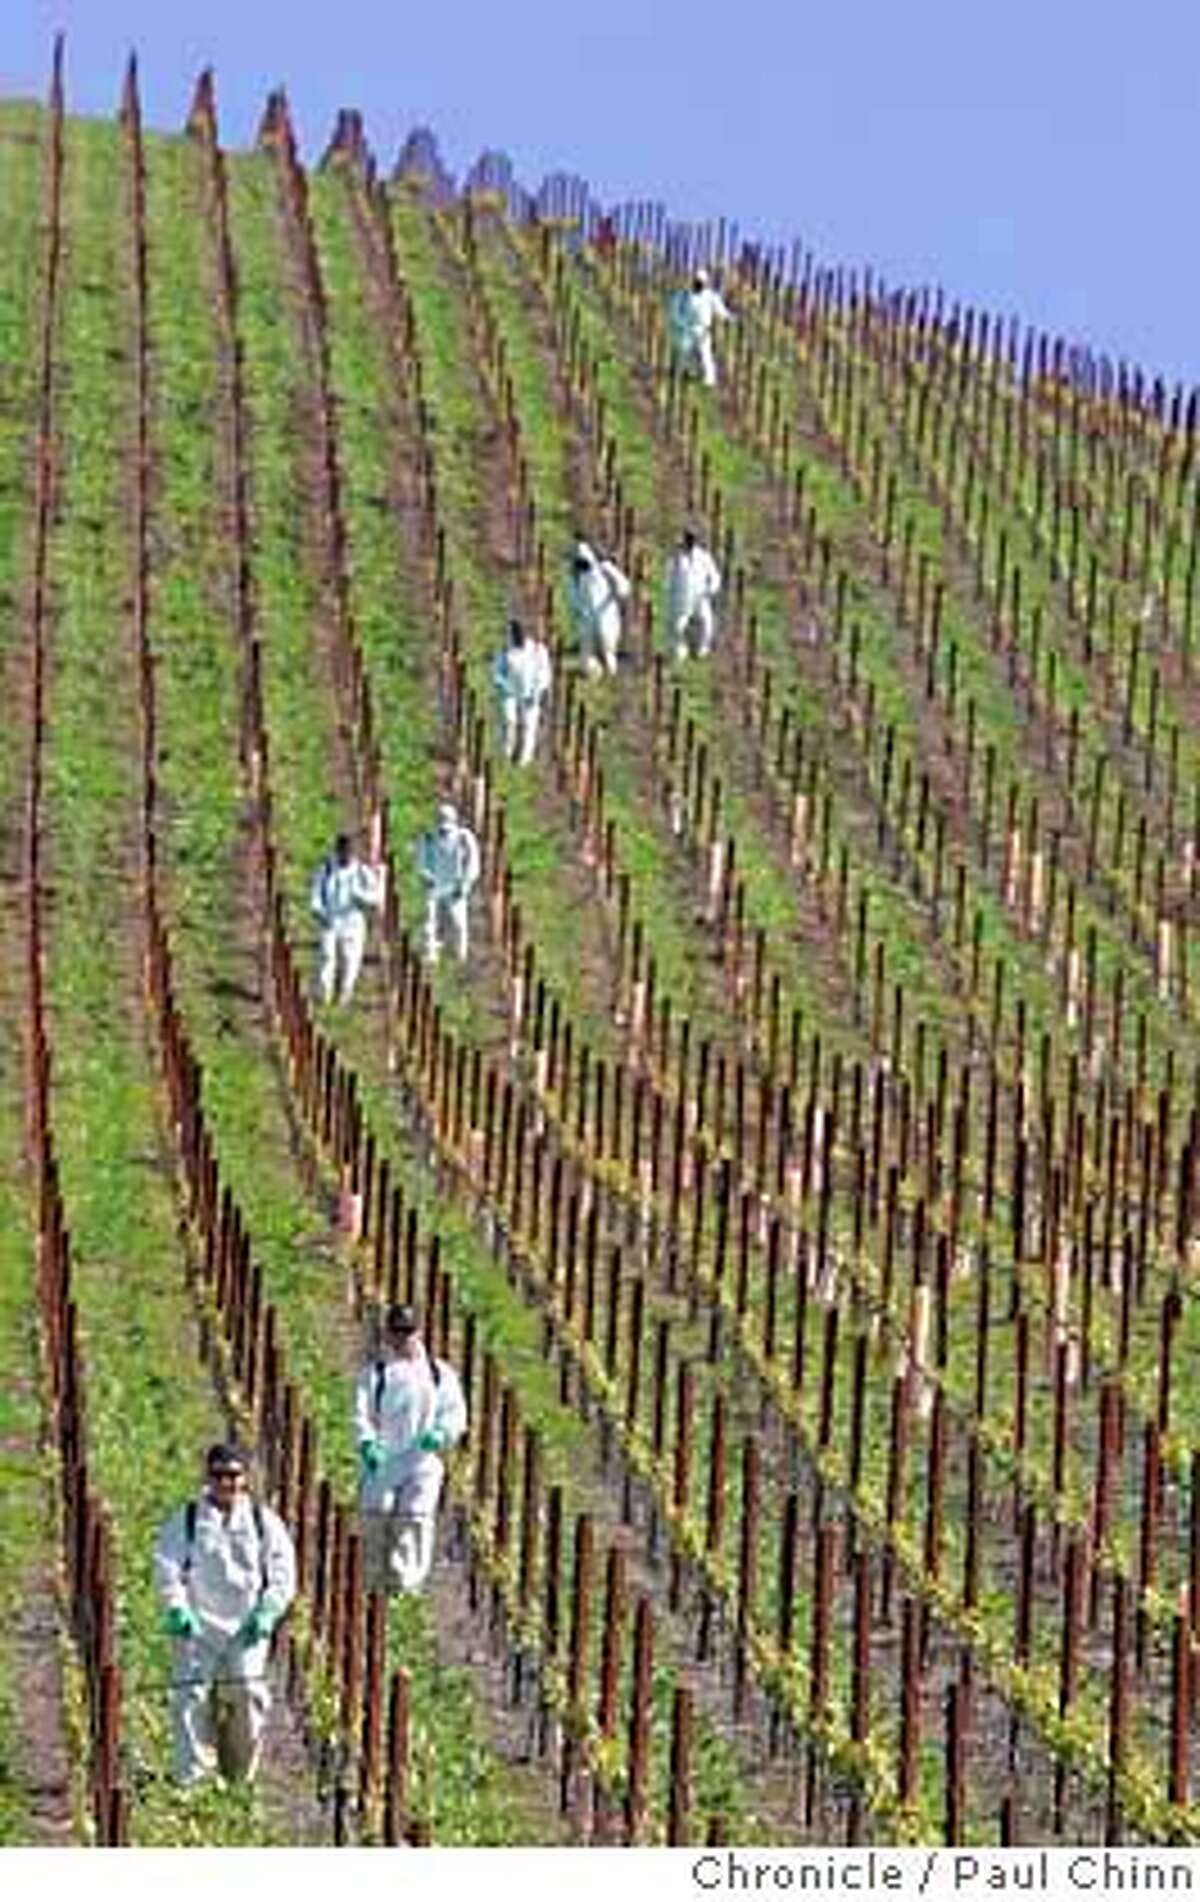 verticalvineyard_107_pc.jpg Clos de la Tech Winery on 4/15/05 in La Honda, CA. Bankrolled by Cypress Semiconductor's TJ Rodgers and his partner Valeta Massey, the vineyard is laid out on an incredibly steep slope on Langley Hill. But some of the vineyard's steepest slopes lie directly above La Honda's sole year-round water supply and residents there worry that a landslide could wipe out their lifeline. PAUL CHINN/The Chronicle MANDATORY CREDIT FOR PHOTOG AND S.F. CHRONICLE/ - MAGS OUT